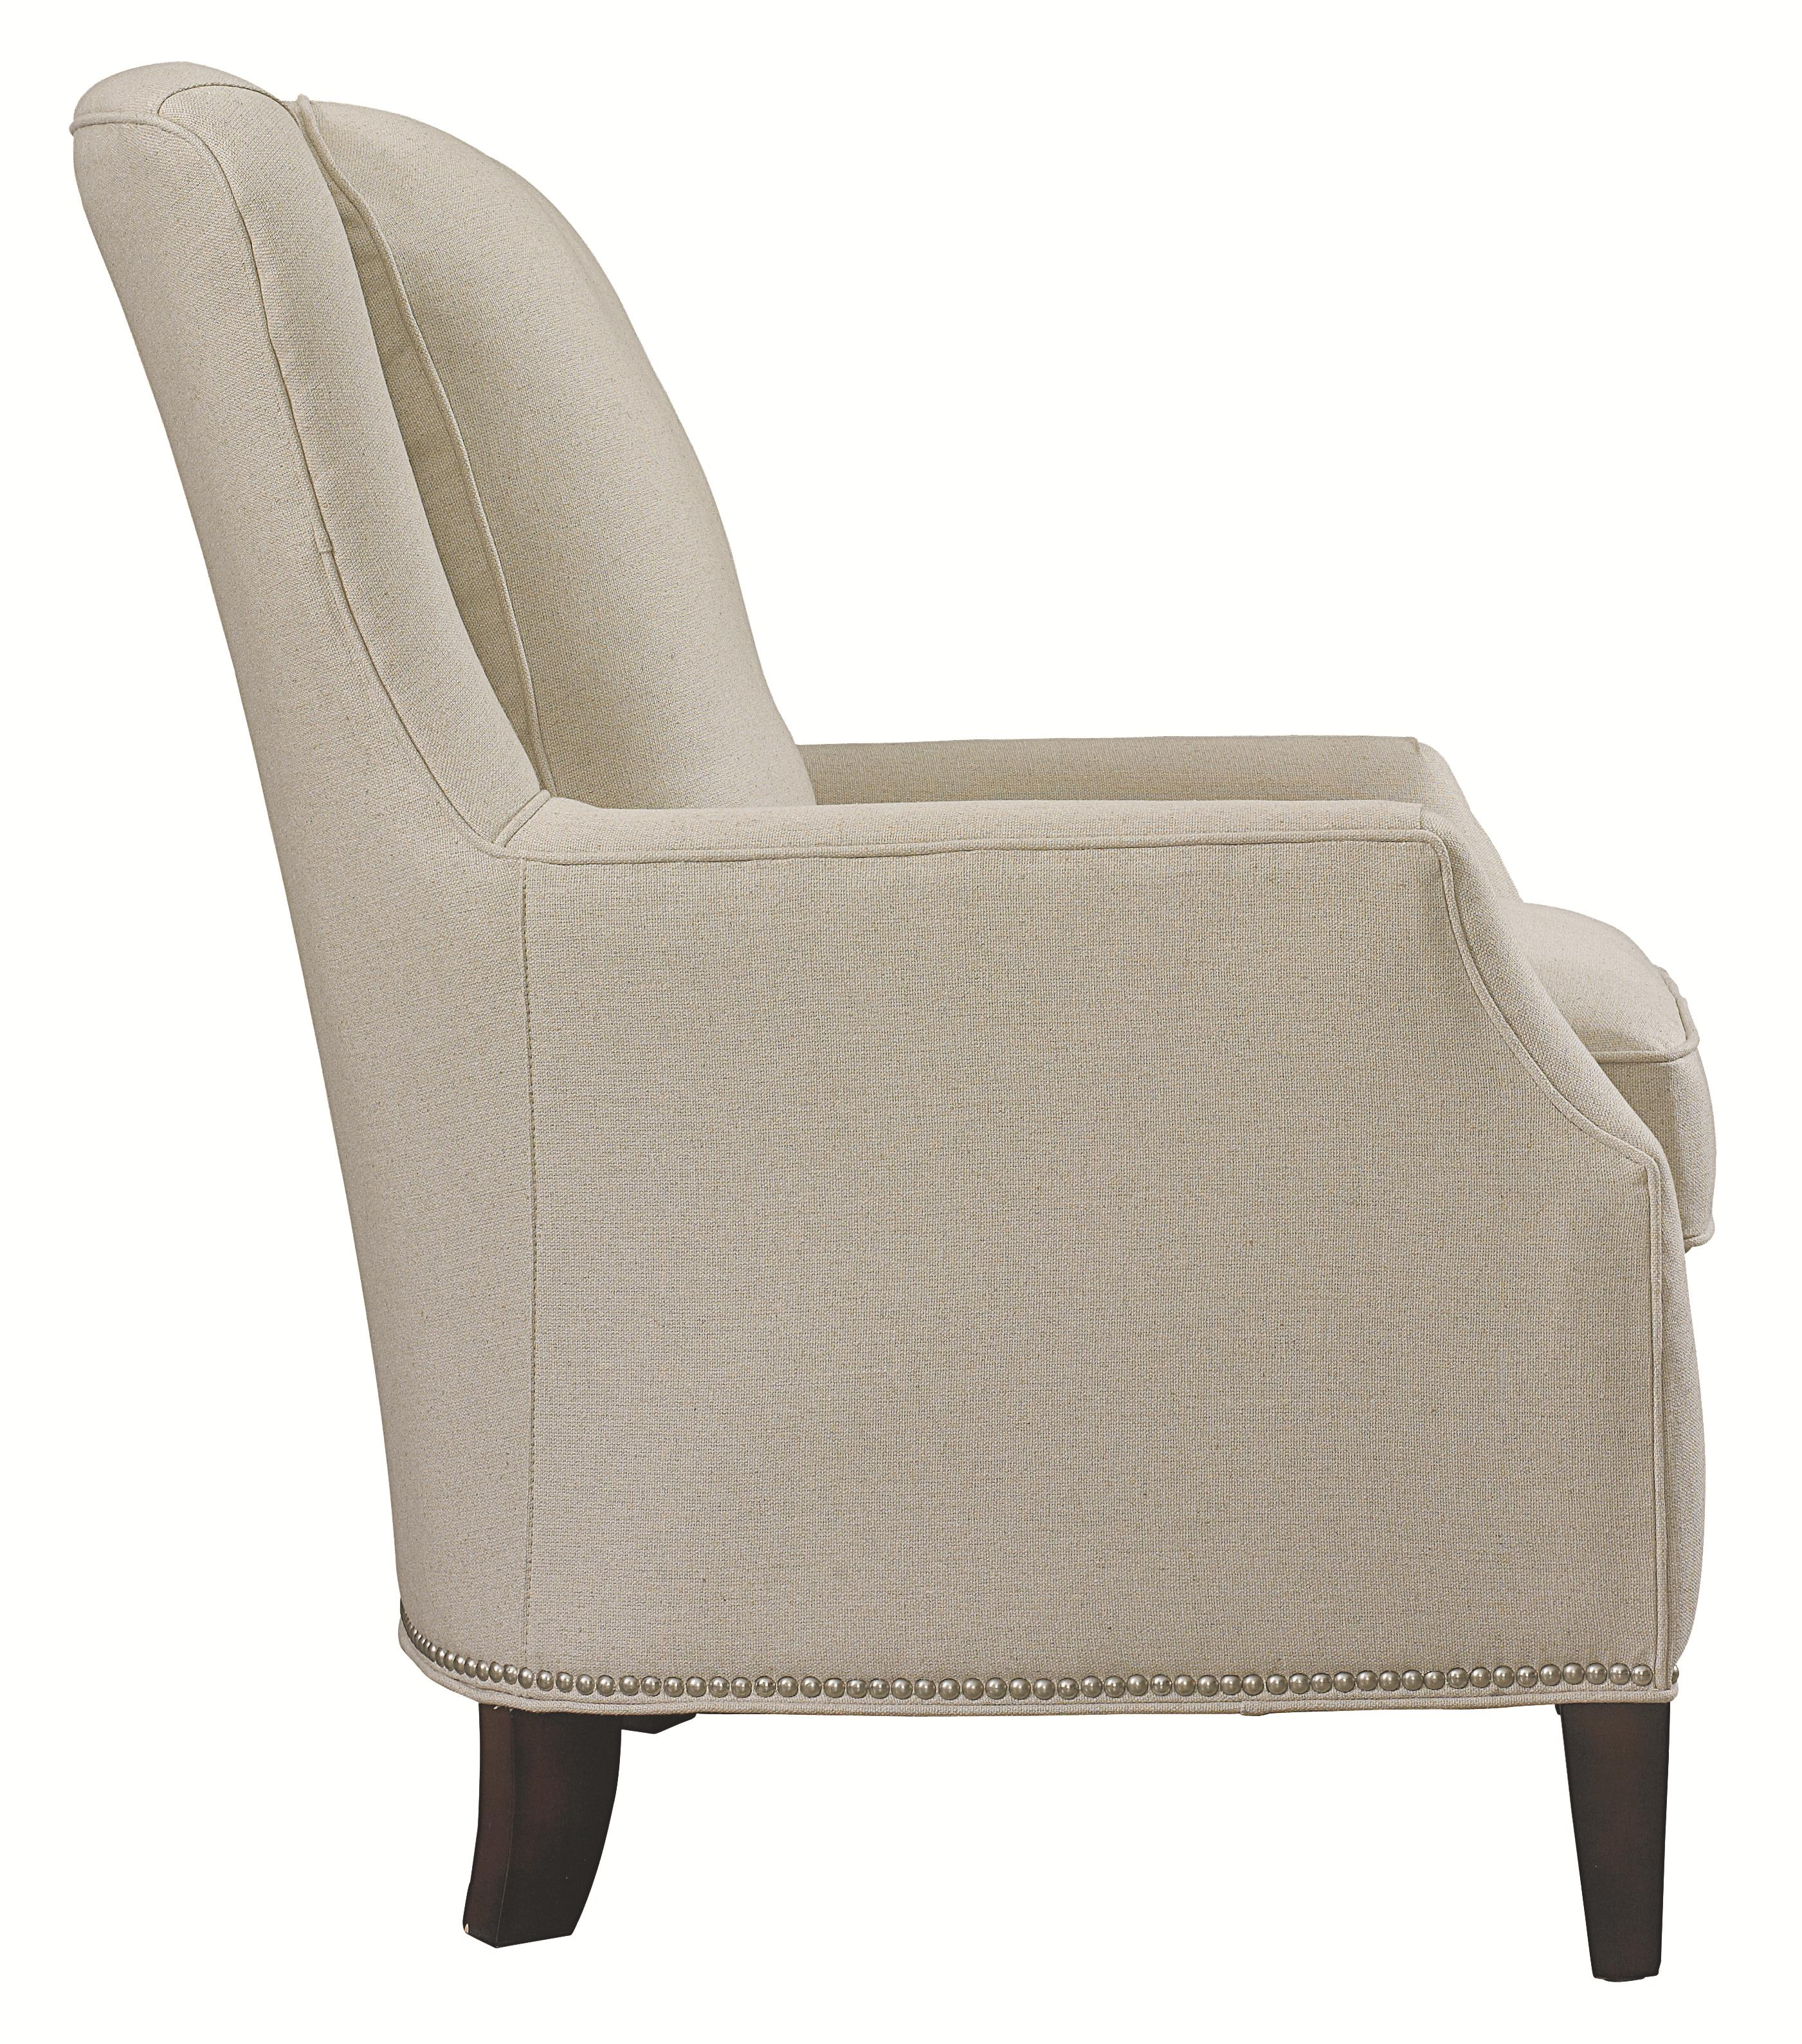 Accent Chairs Melbourne Bassett Accent Chairs By Bassett 1951 02 Kent Accent Chair